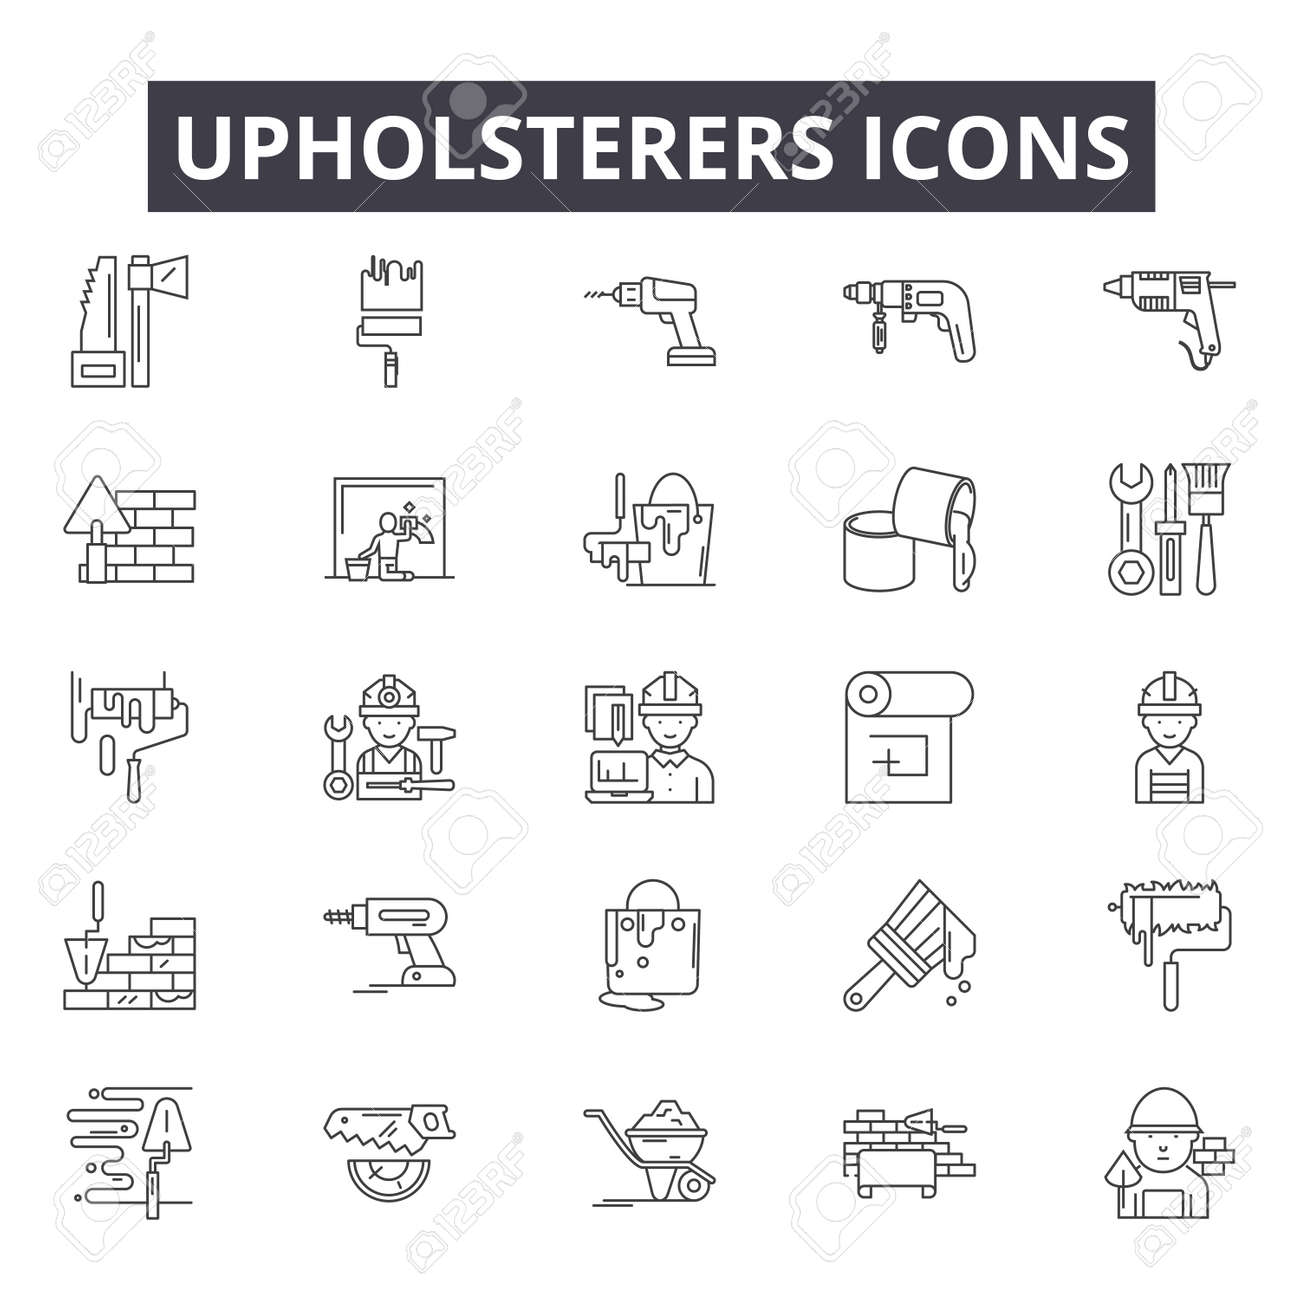 Upholsterers line icons for web and mobile. Editable stroke signs. Upholsterers outline concept illustrations - 119235325